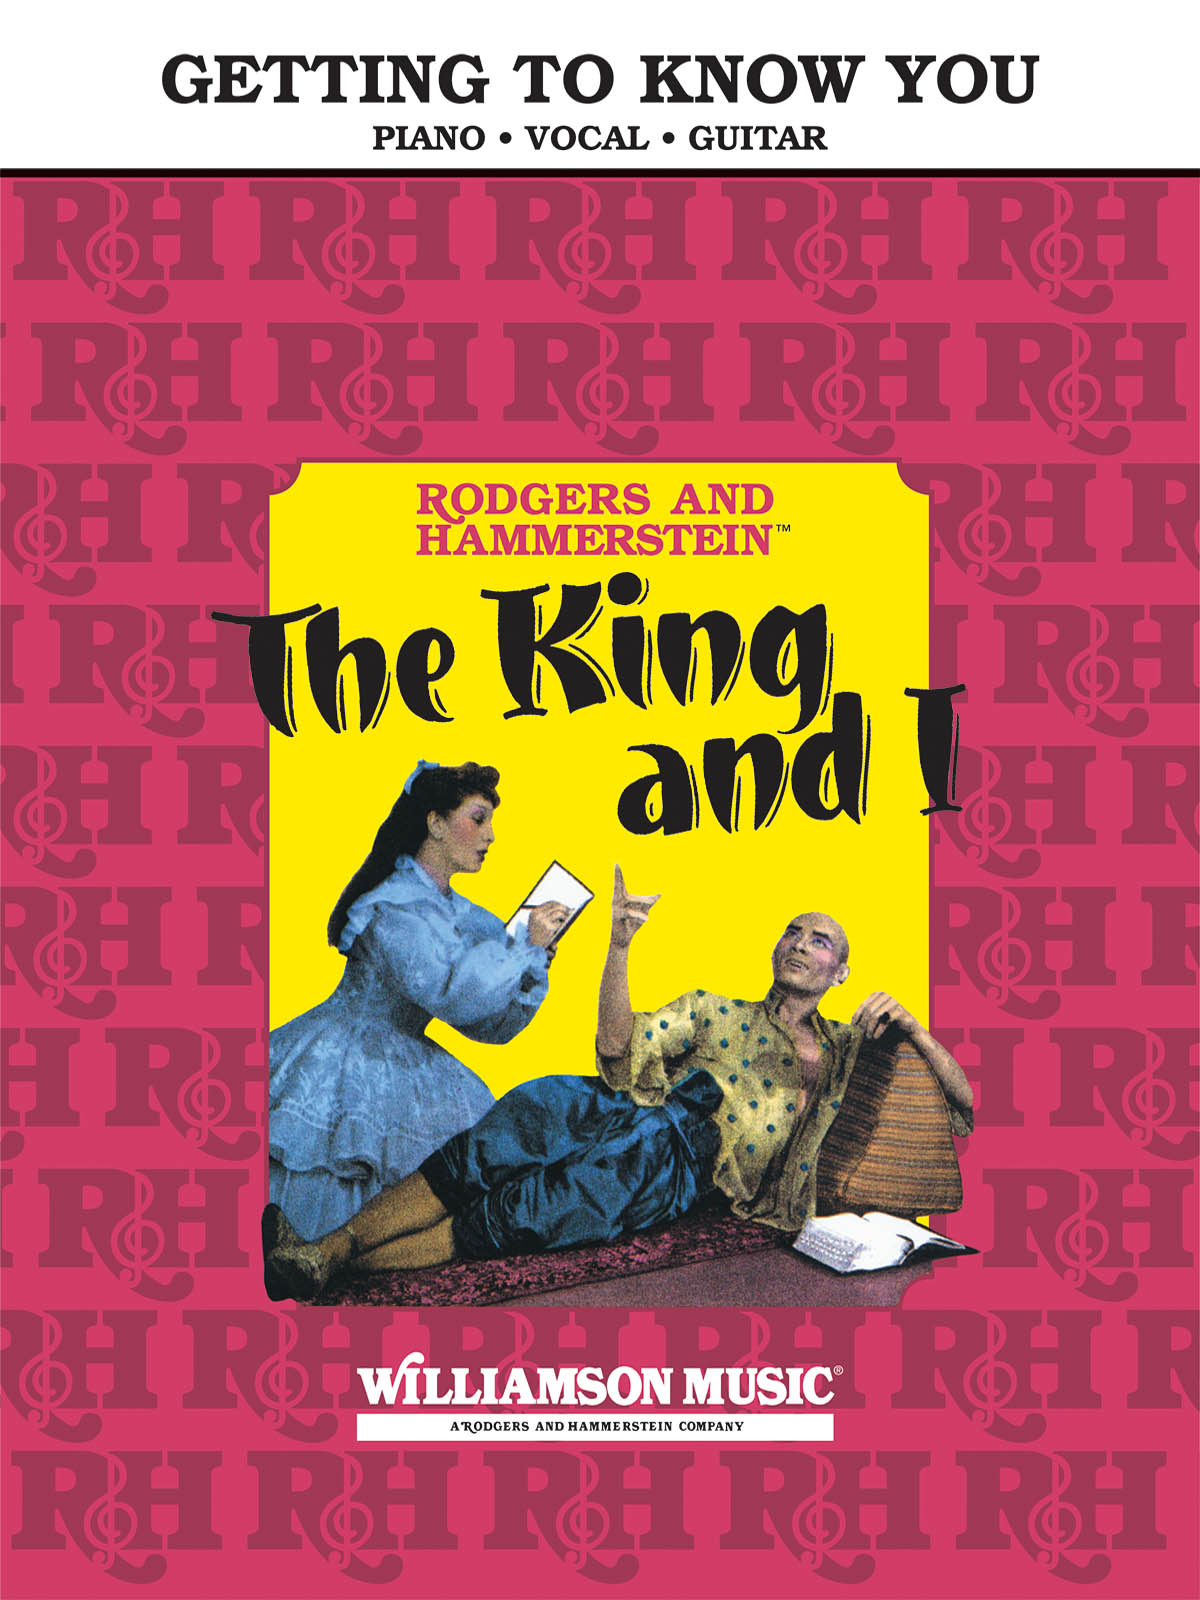 Getting to Know You From The King and I: Piano Vocal and Guitar: Single Sheet